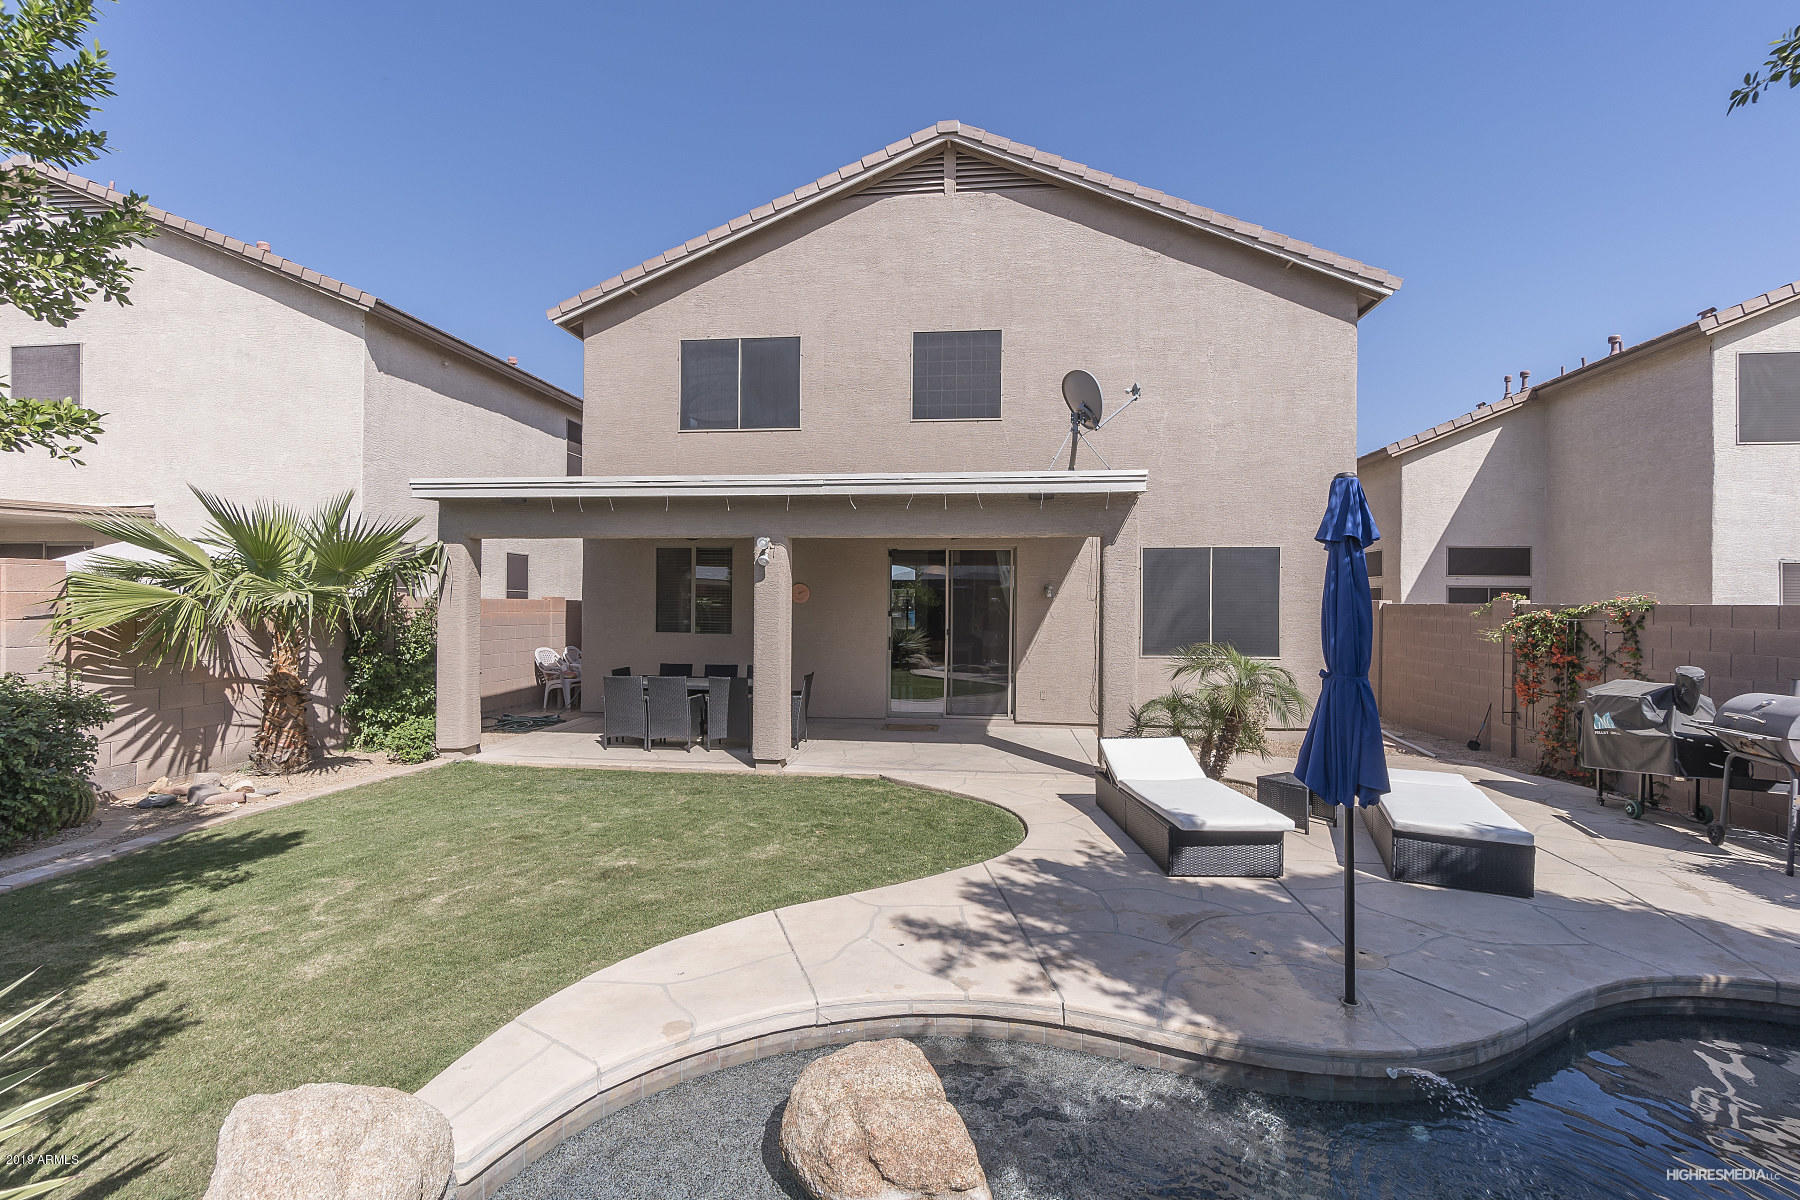 17636 N 40TH Way, Phoenix, 85032, MLS # 5906058 | Better Homes and Gardens  BloomTree Realty